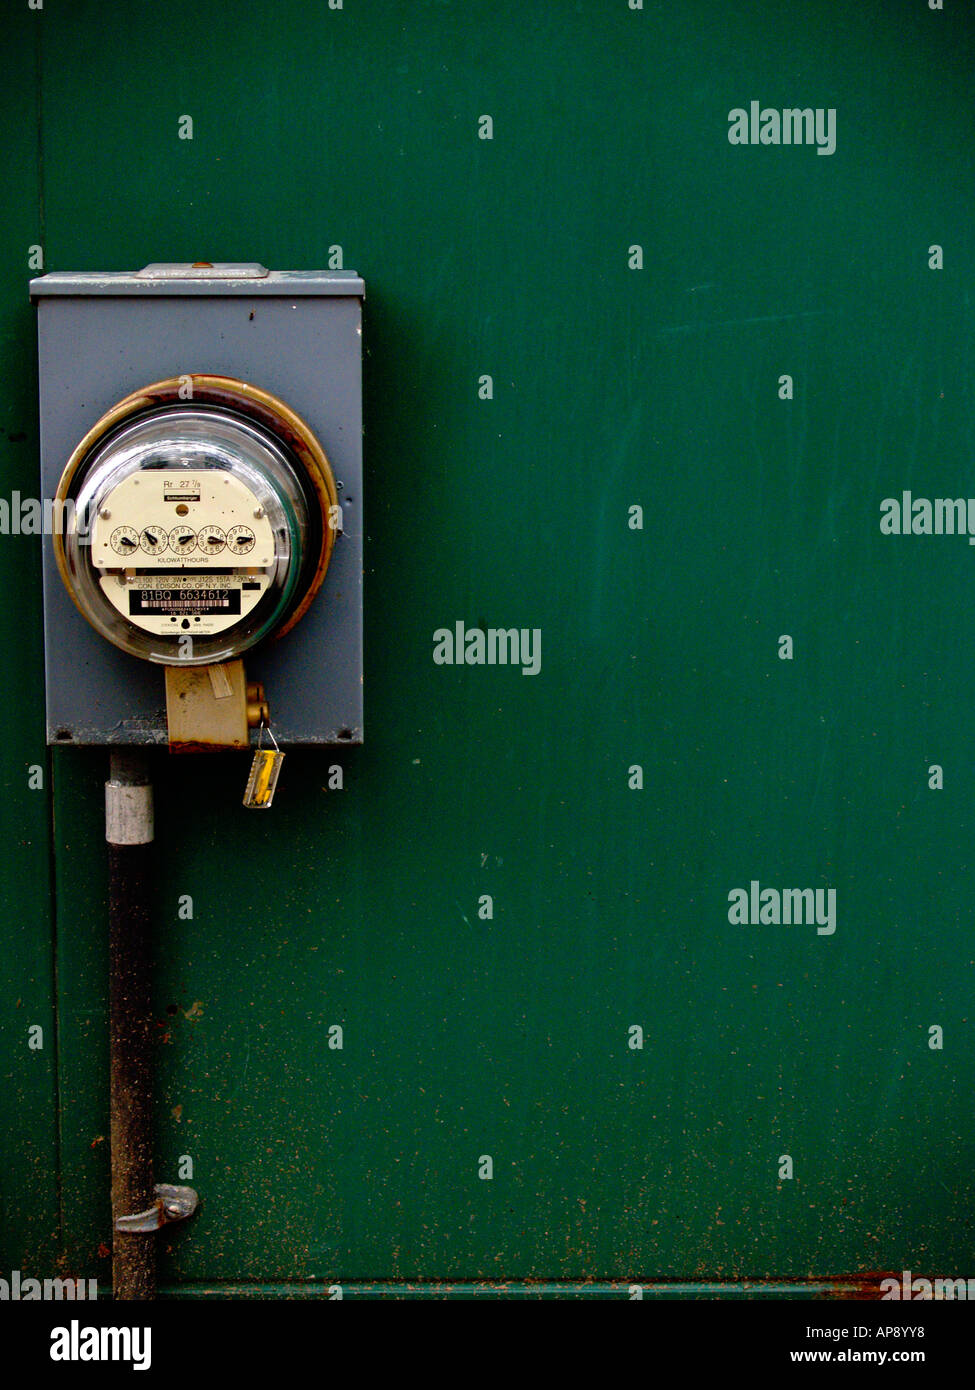 Outdoor electrical power meter at left side of frame on blue-green wall with slight vignetting. - Stock Image